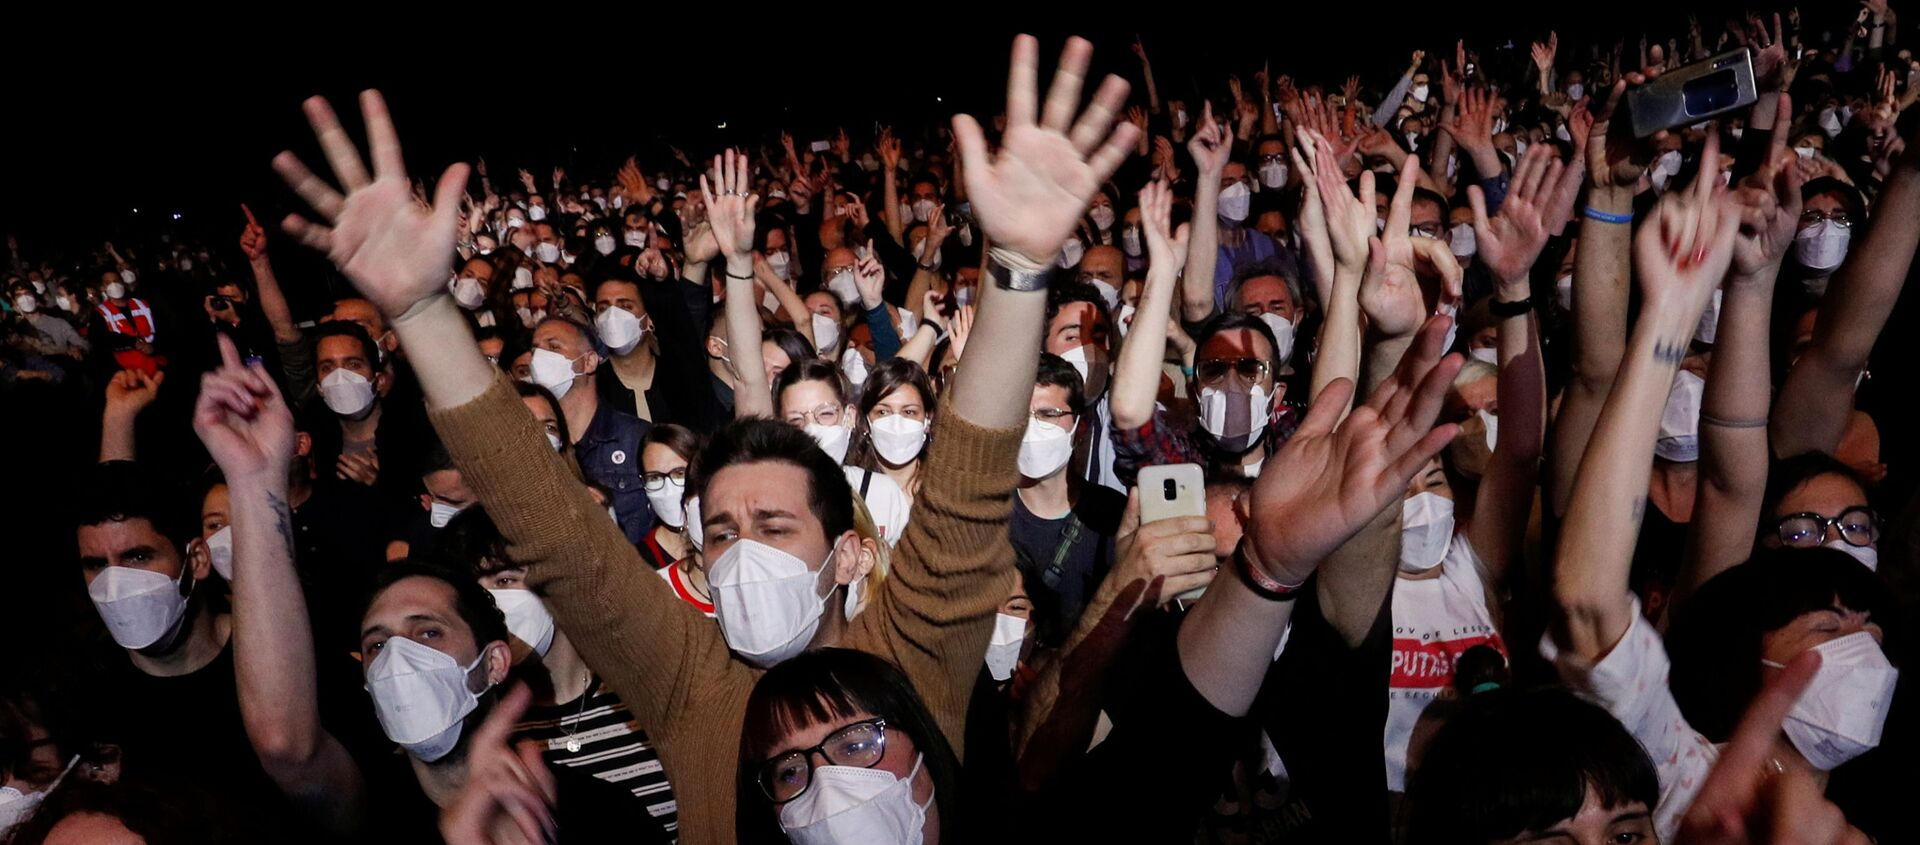 People wearing protective masks attend a concert of Love of Lesbian at the Palau Sant Jordi, the first massive concert since the beginning of the coronavirus disease (COVID-19) pandemic in Barcelona, Spain, March 27, 2021. - Sputnik Italia, 1920, 29.03.2021